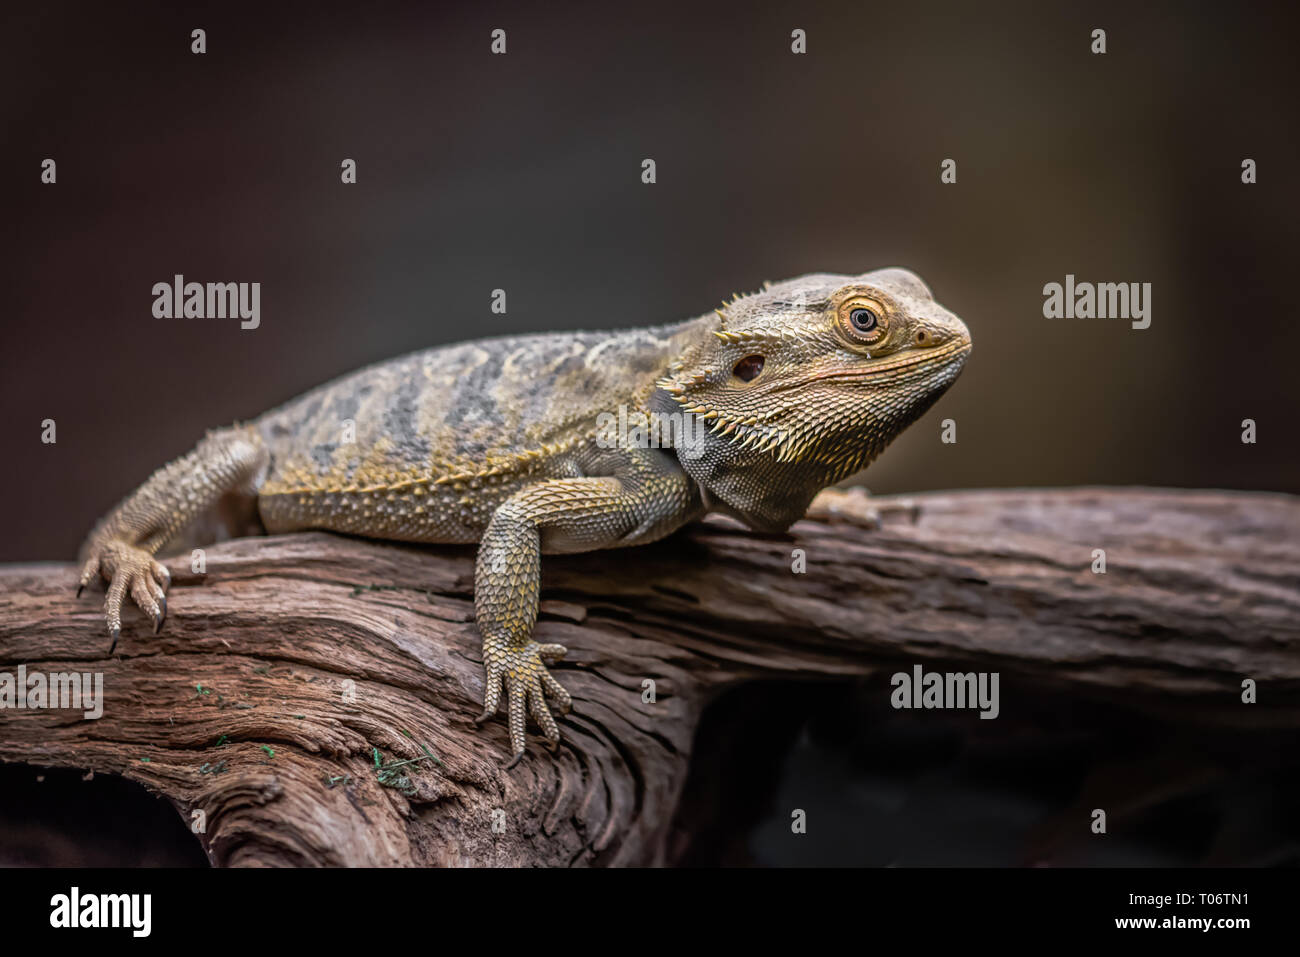 An alert bearded dragon full length as it rests on an old wooden log against a dark coloured background Stock Photo